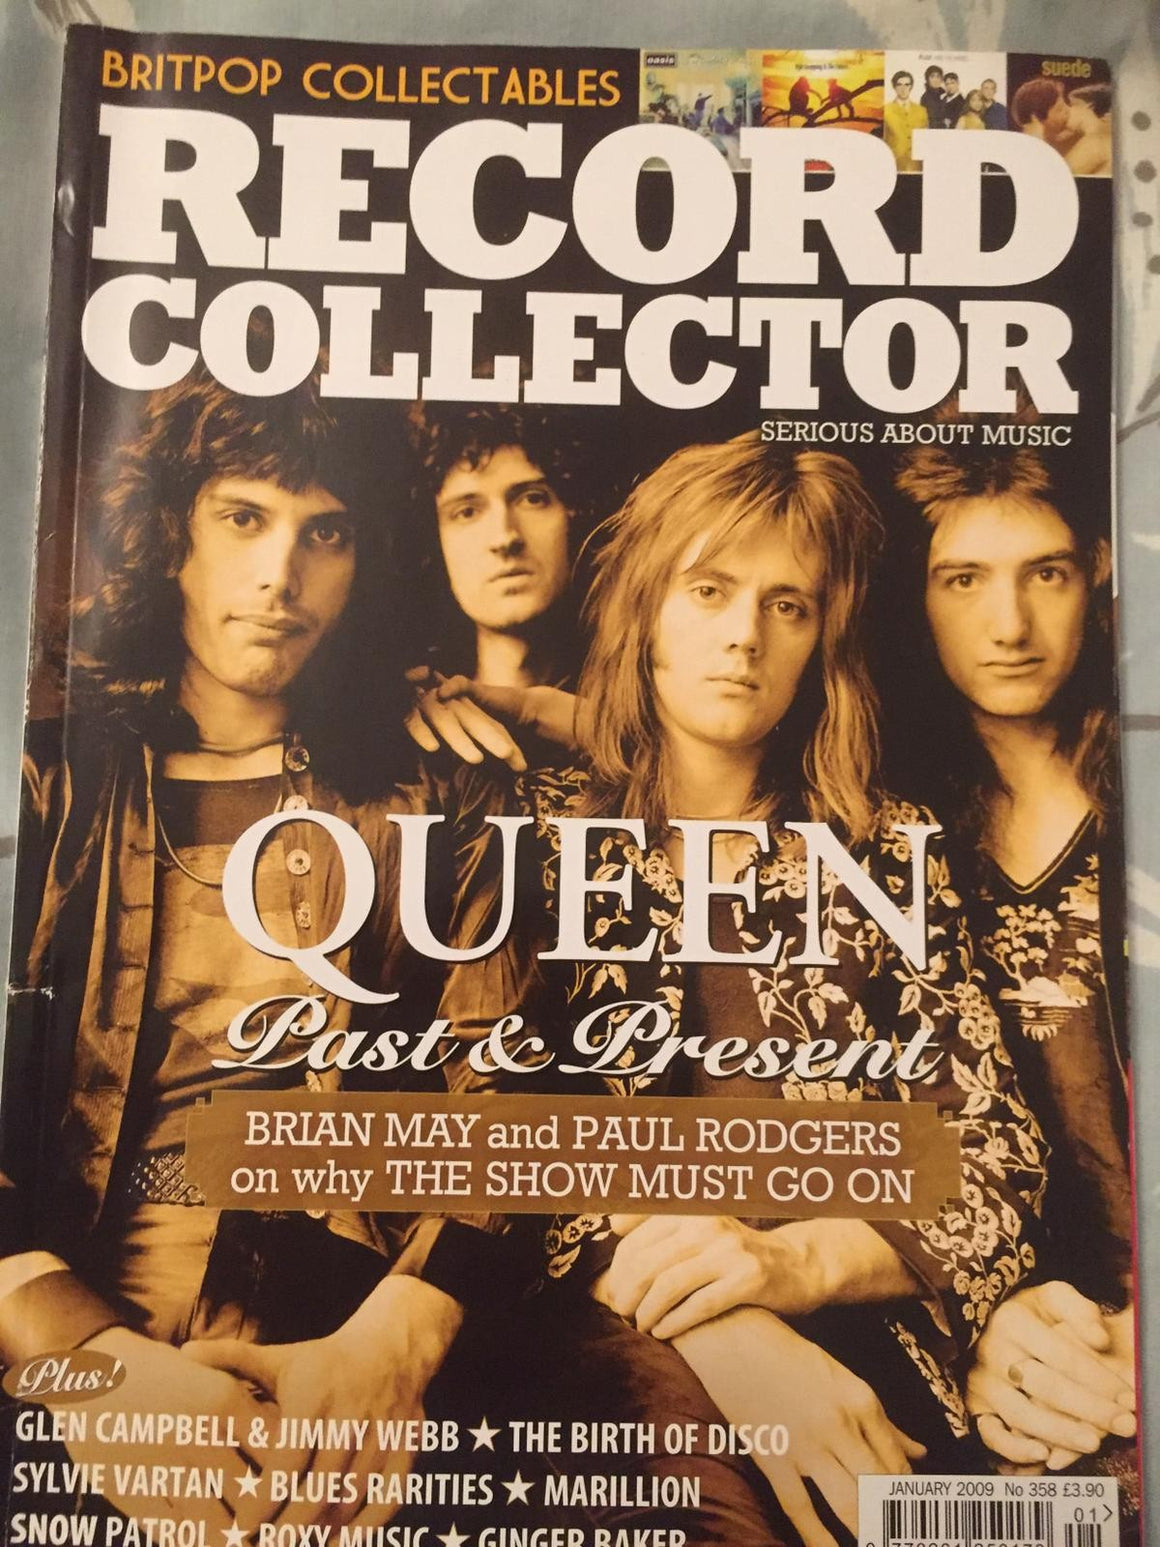 RECORD COLLECTOR MAGAZINE #358 JANUARY 2009: Queen (Freddie Mercury)